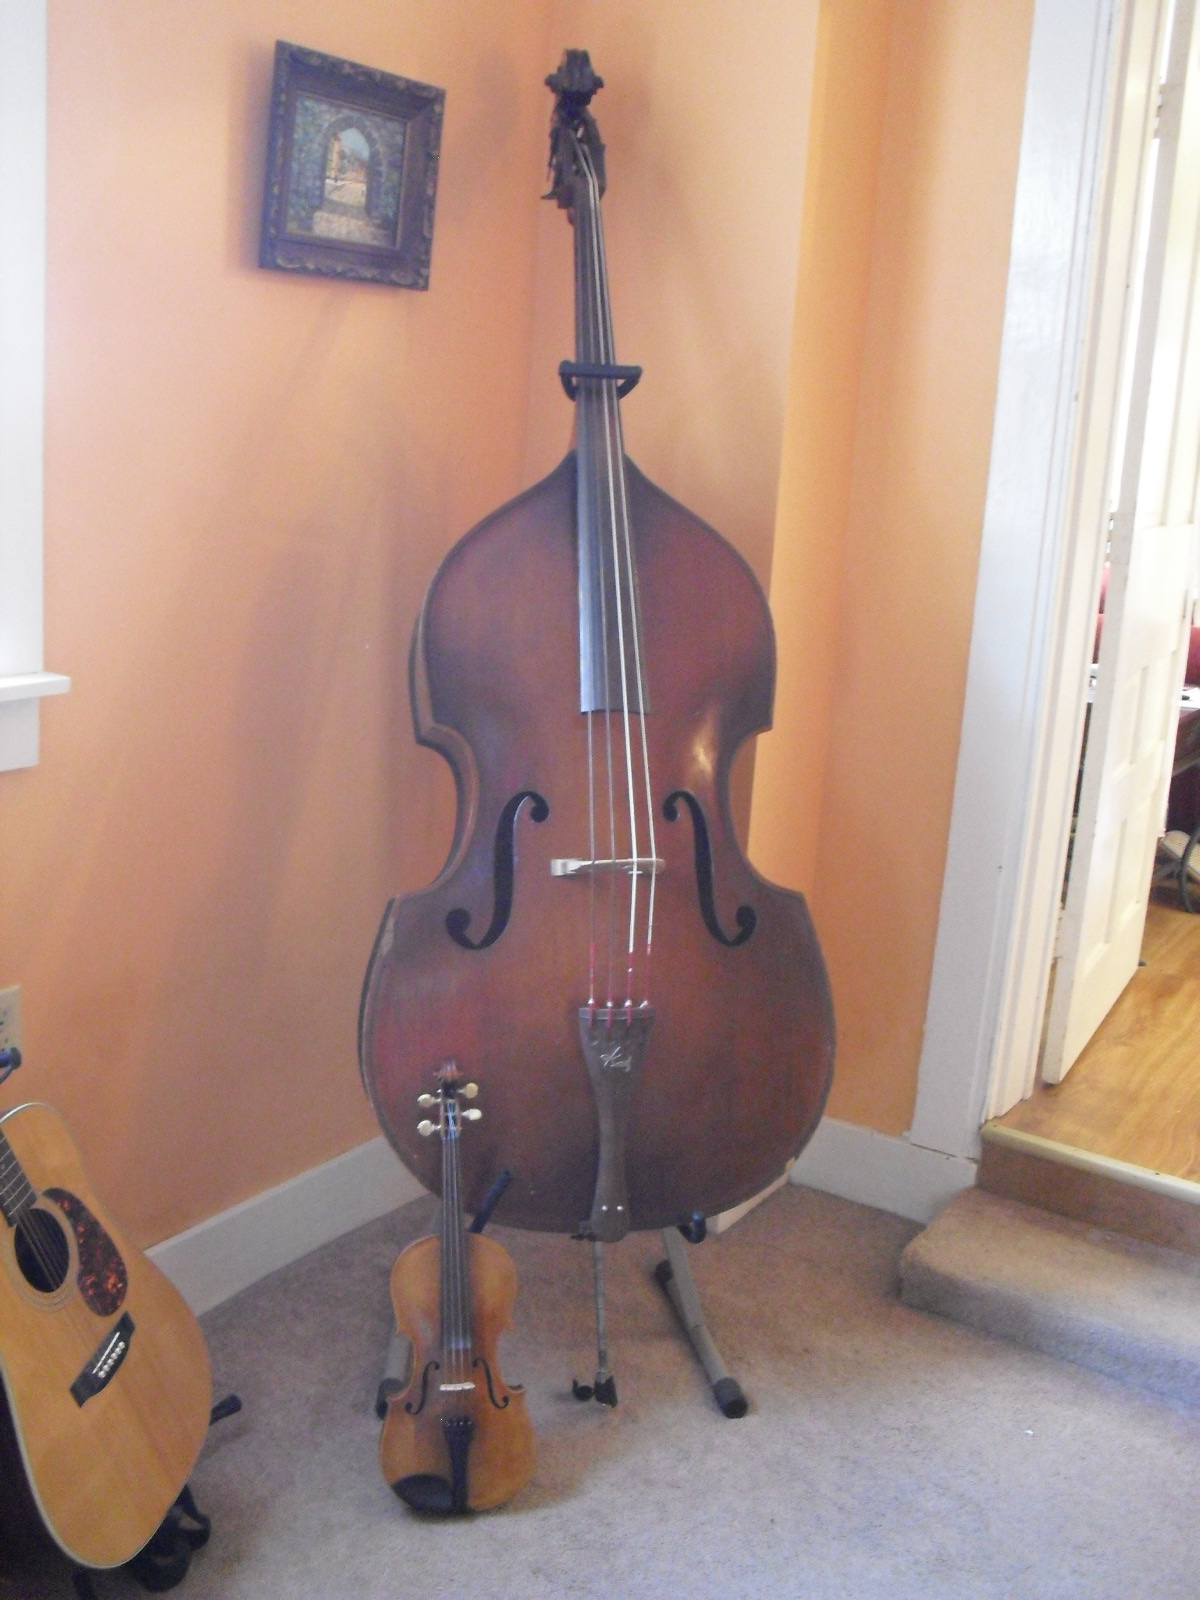 the big upright bass in our living room. Black Bedroom Furniture Sets. Home Design Ideas